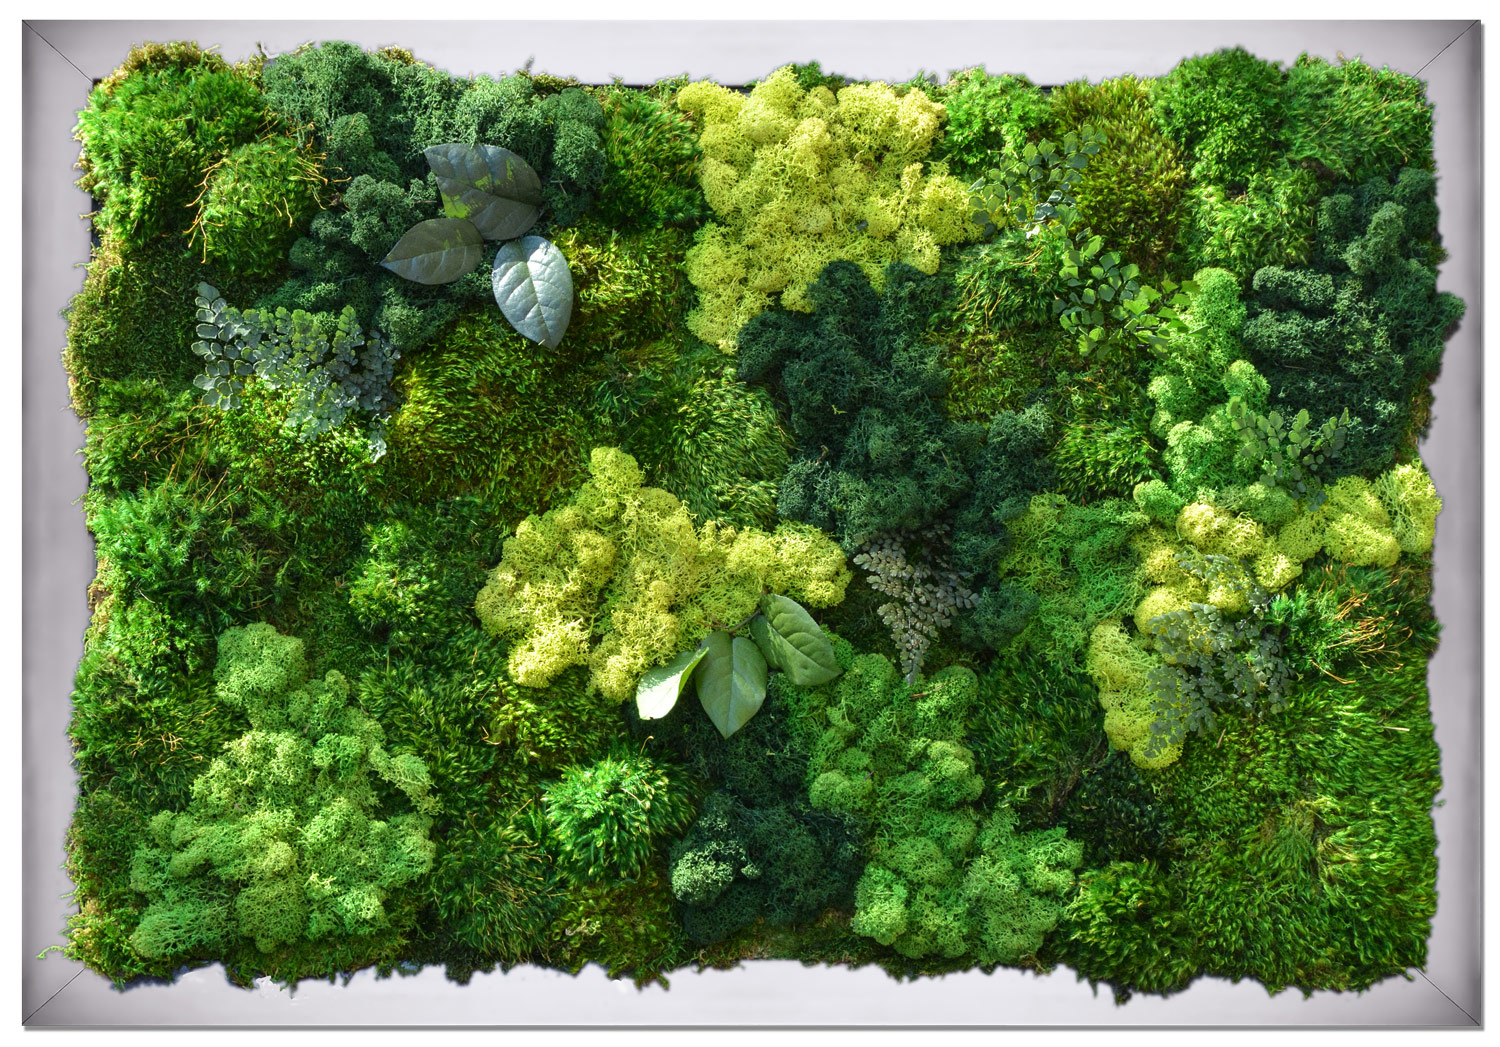 Moss Art Final Size 2u0027x3u2032 $600. Shipping is not included. Order Now » : wall framed art - www.pureclipart.com